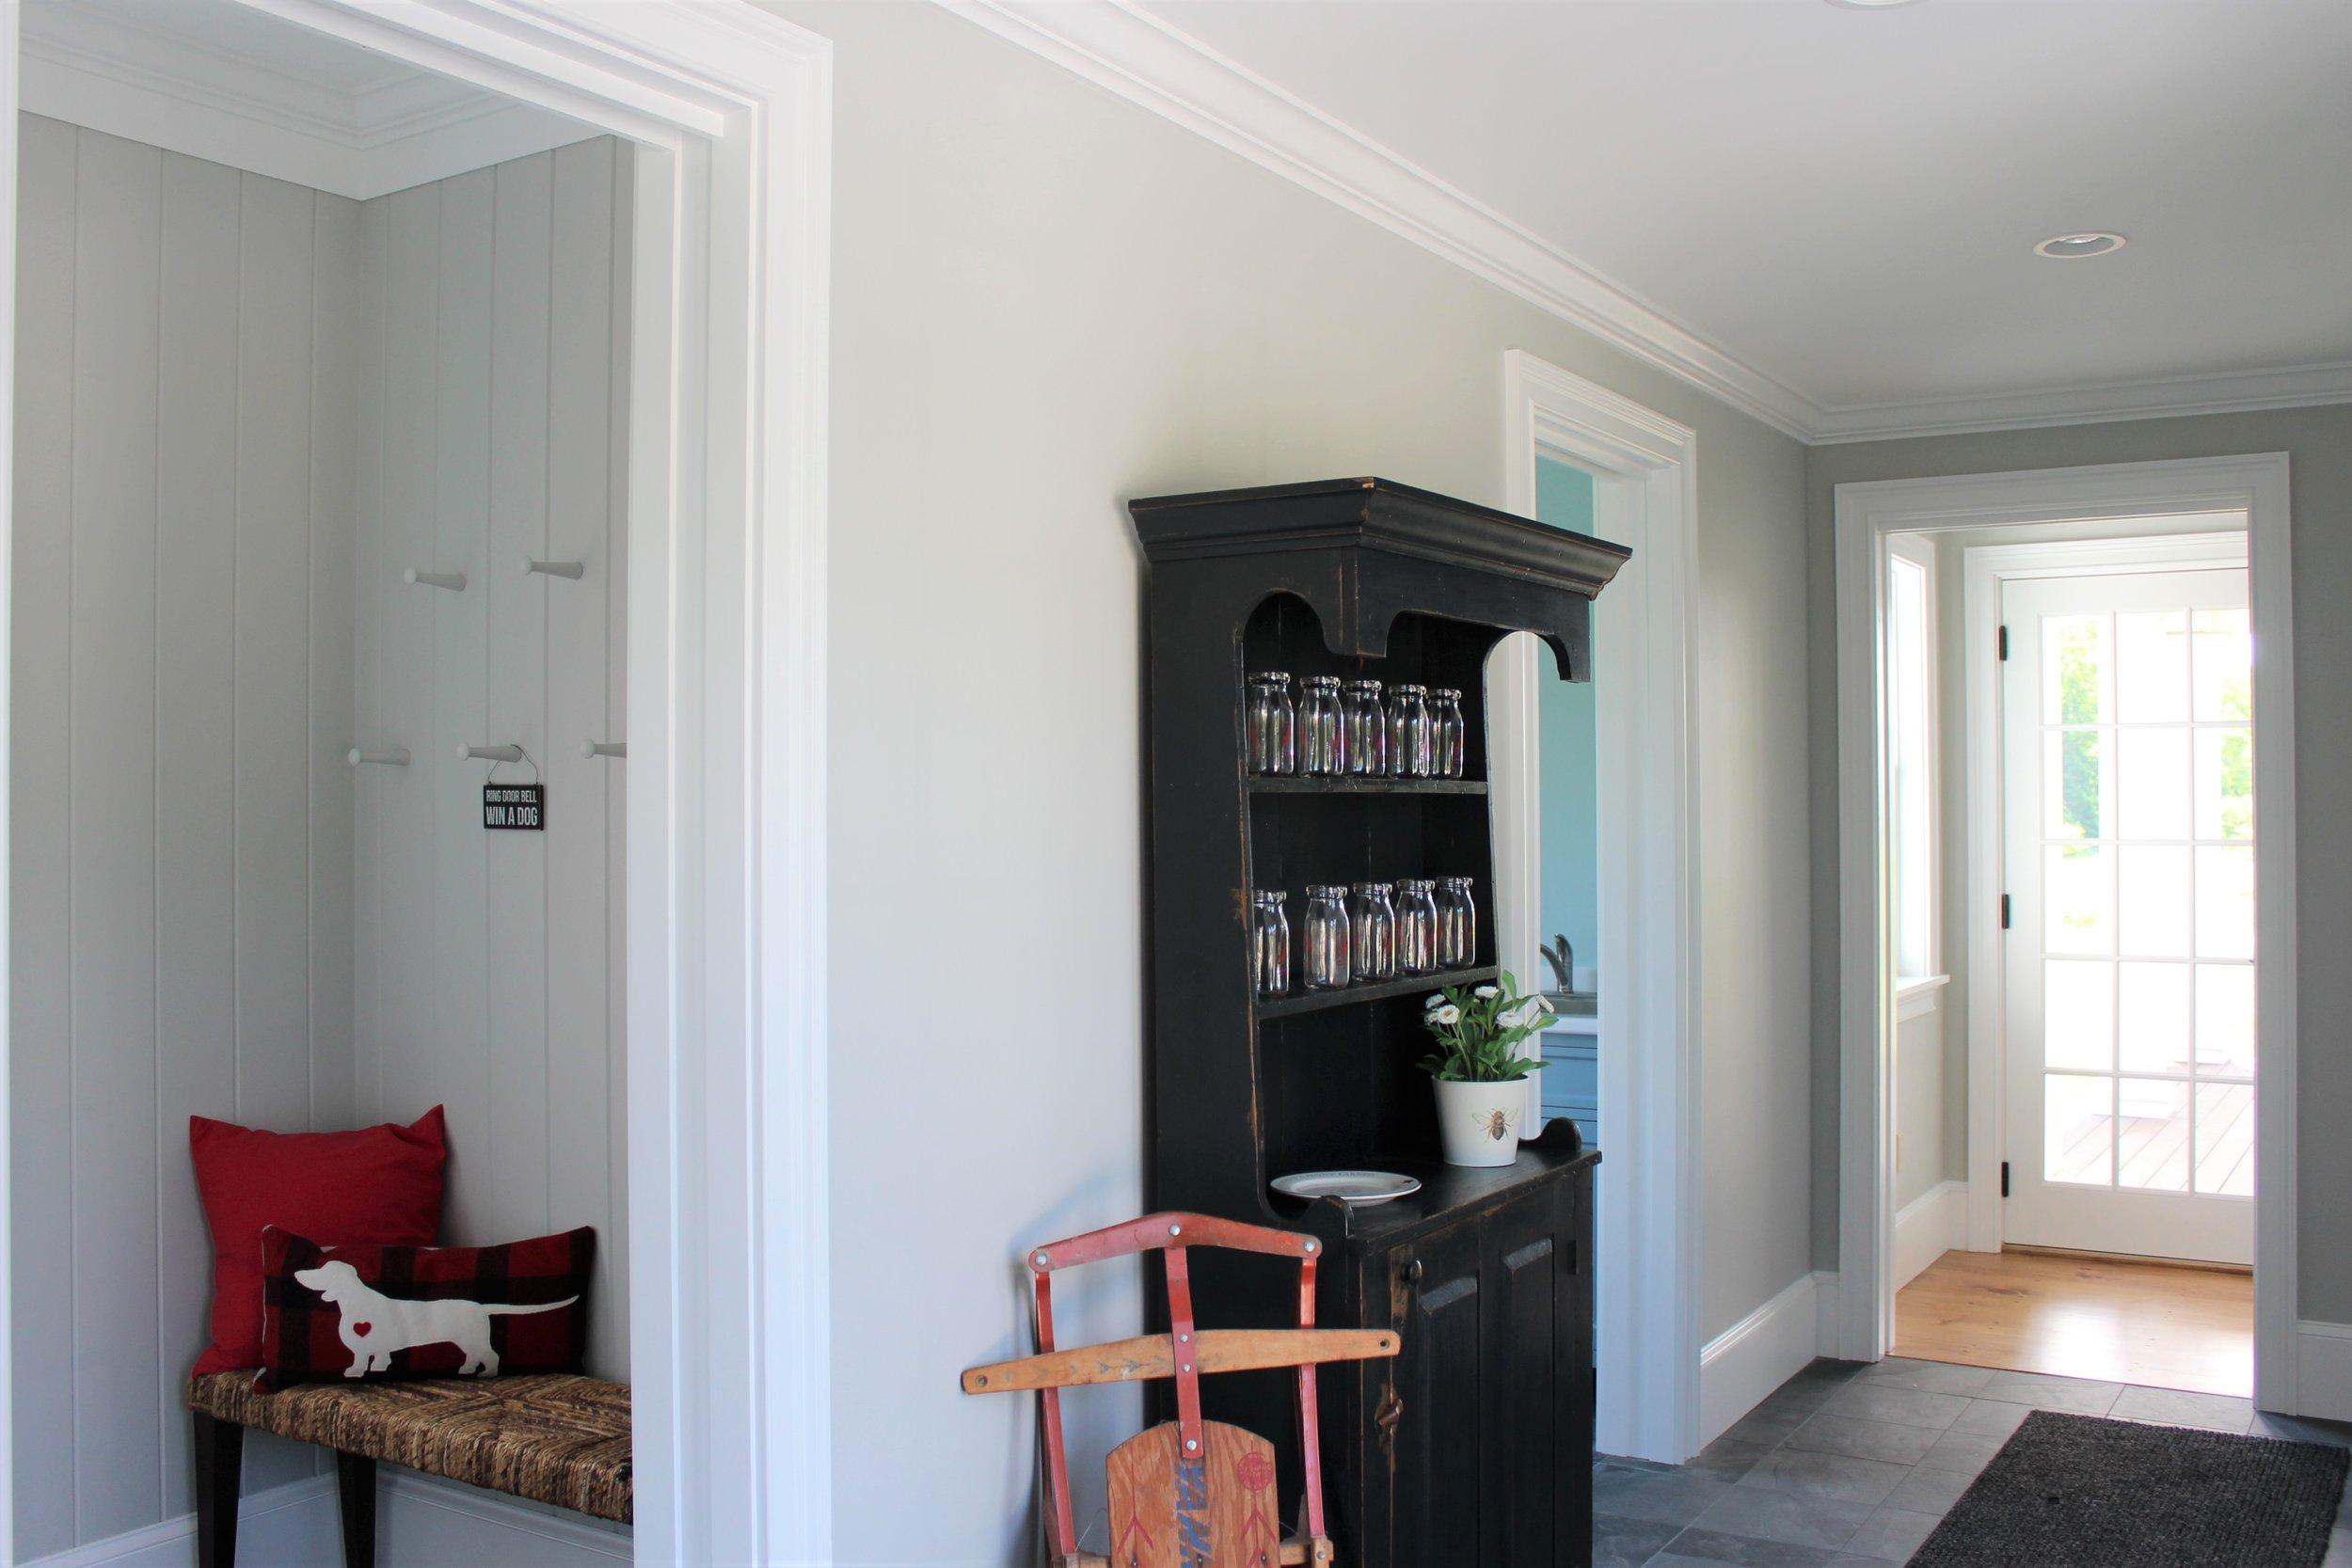 This large foyer has a separate mud room complete with a bench and pegs. The walls are v-grove panels painted the same color as the foyer, Benjamin Moore's Stonington Grey. The difference in texture adds visual interest.